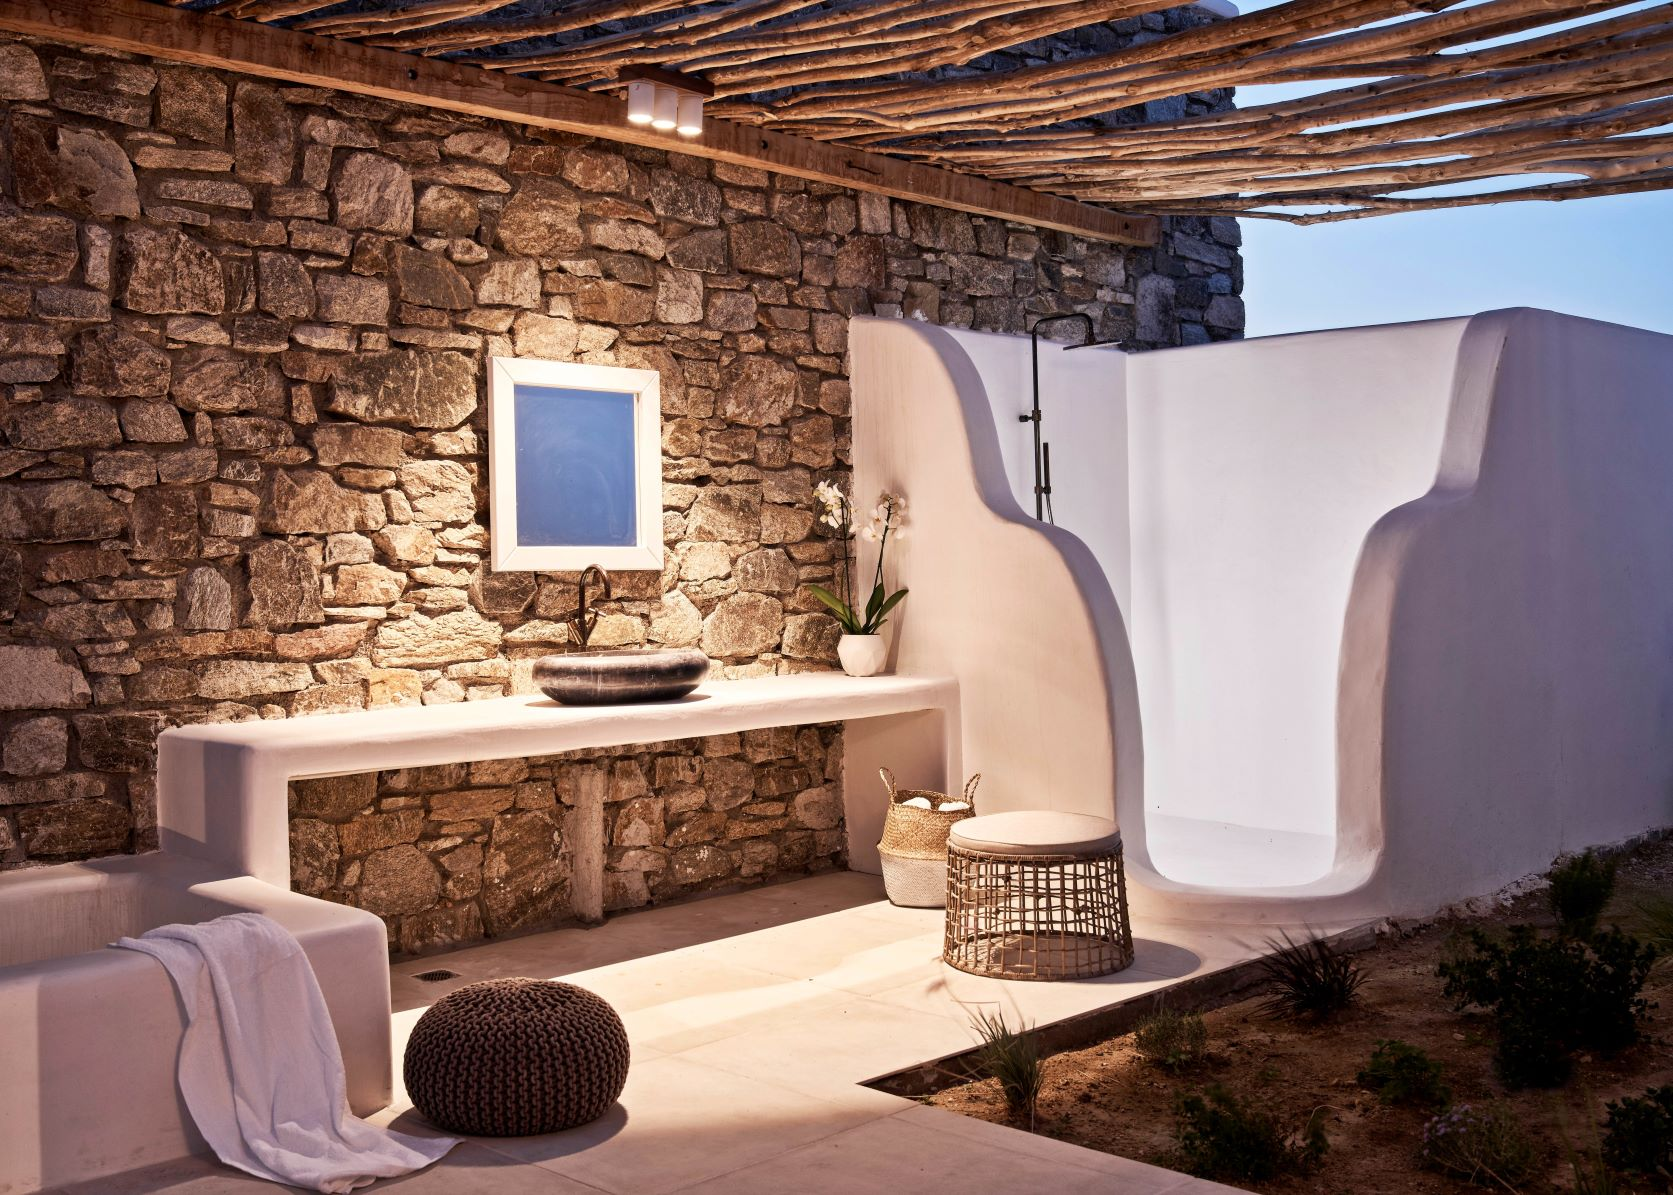 Three bedroom villa bathroom at night